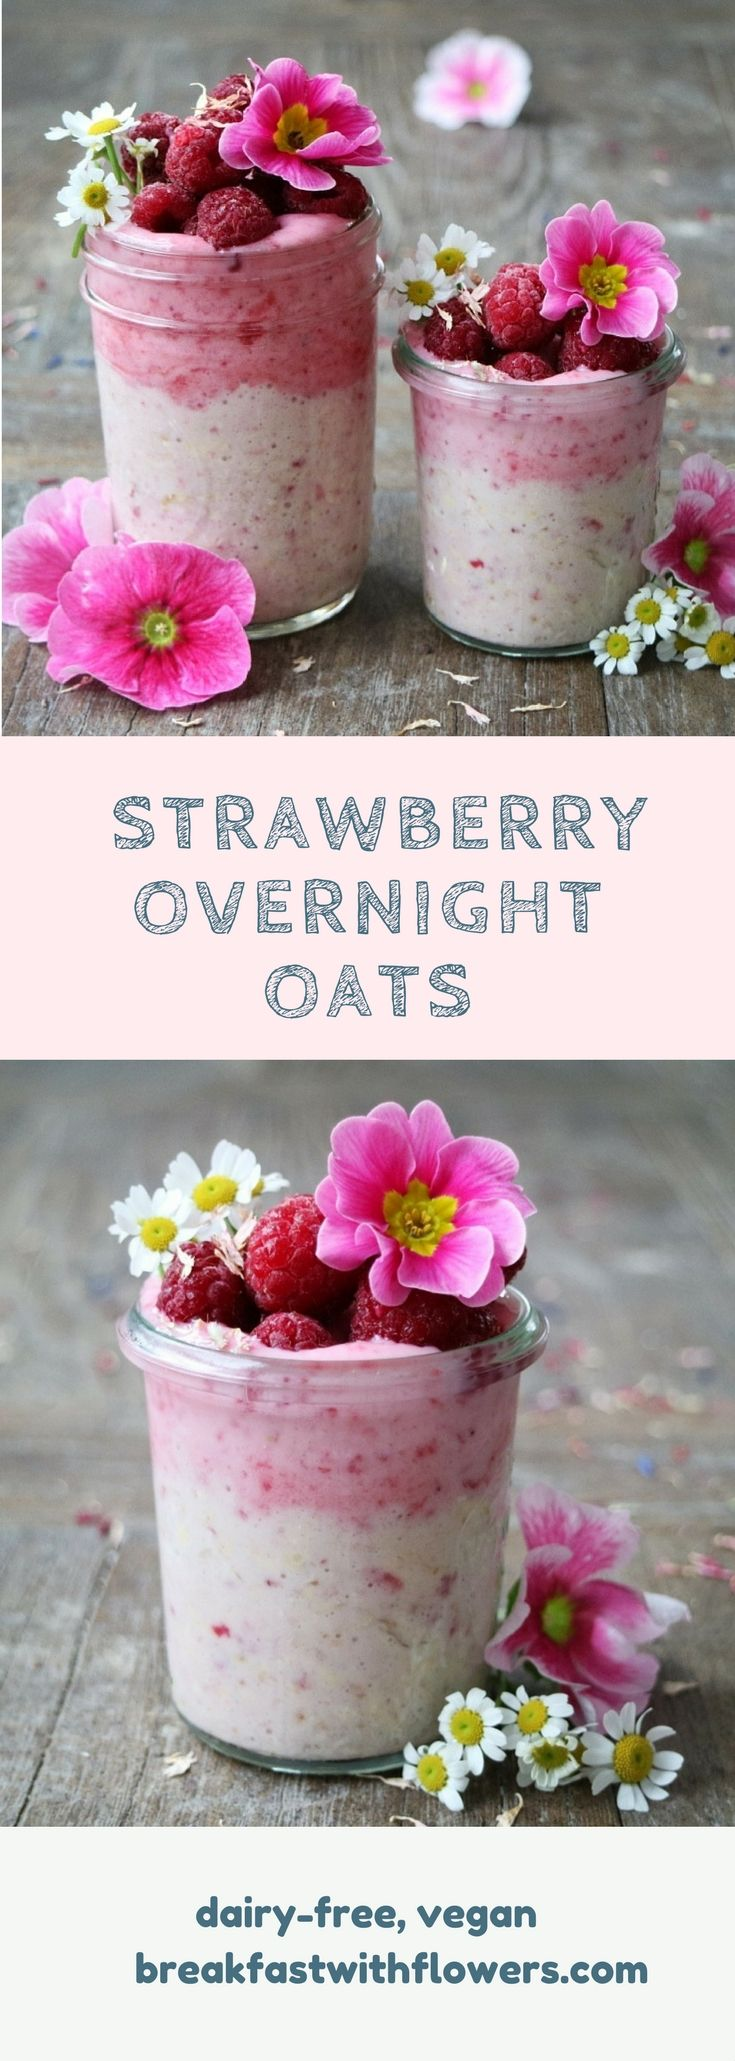 Strawberry Overnight Oats, dairy-free and vegan, decorated with raspberries and edible flowers. Full recipe is on http://breakfastwithflowers.com/strawberry-overnight-oats/